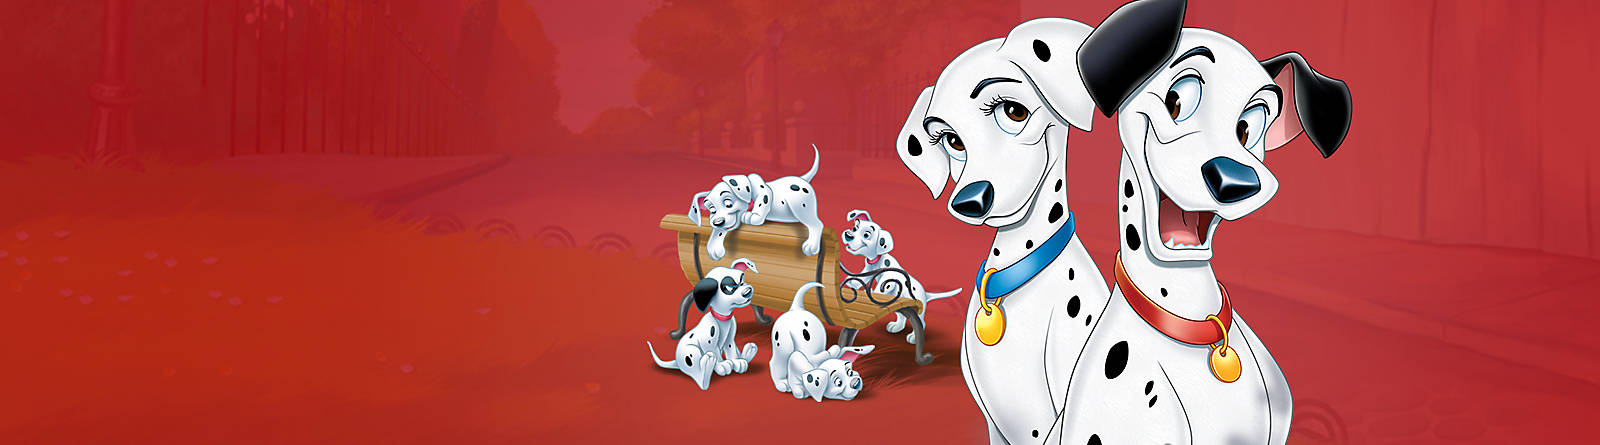 101 Dalmatians Find a soft spot for our range 101 Dalmatians inluding soft toys, clothing, gifts, collectibles and more